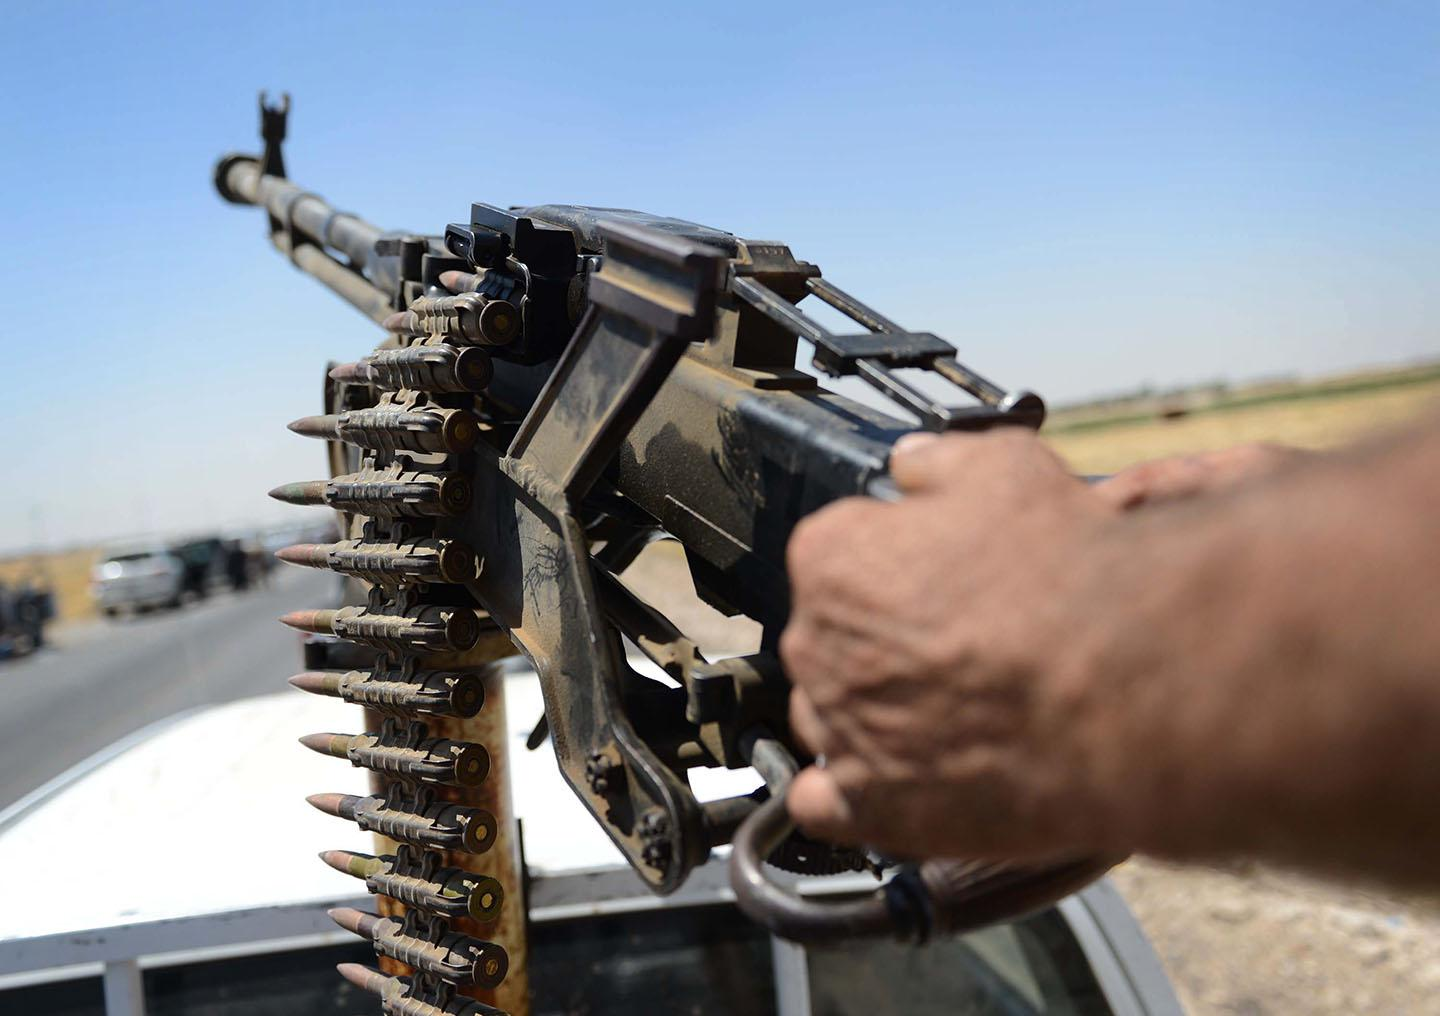 A member of Peshmerga forces in action during the clashes with ISIS militants on August 10, 2014 in Mosul, Iraq.